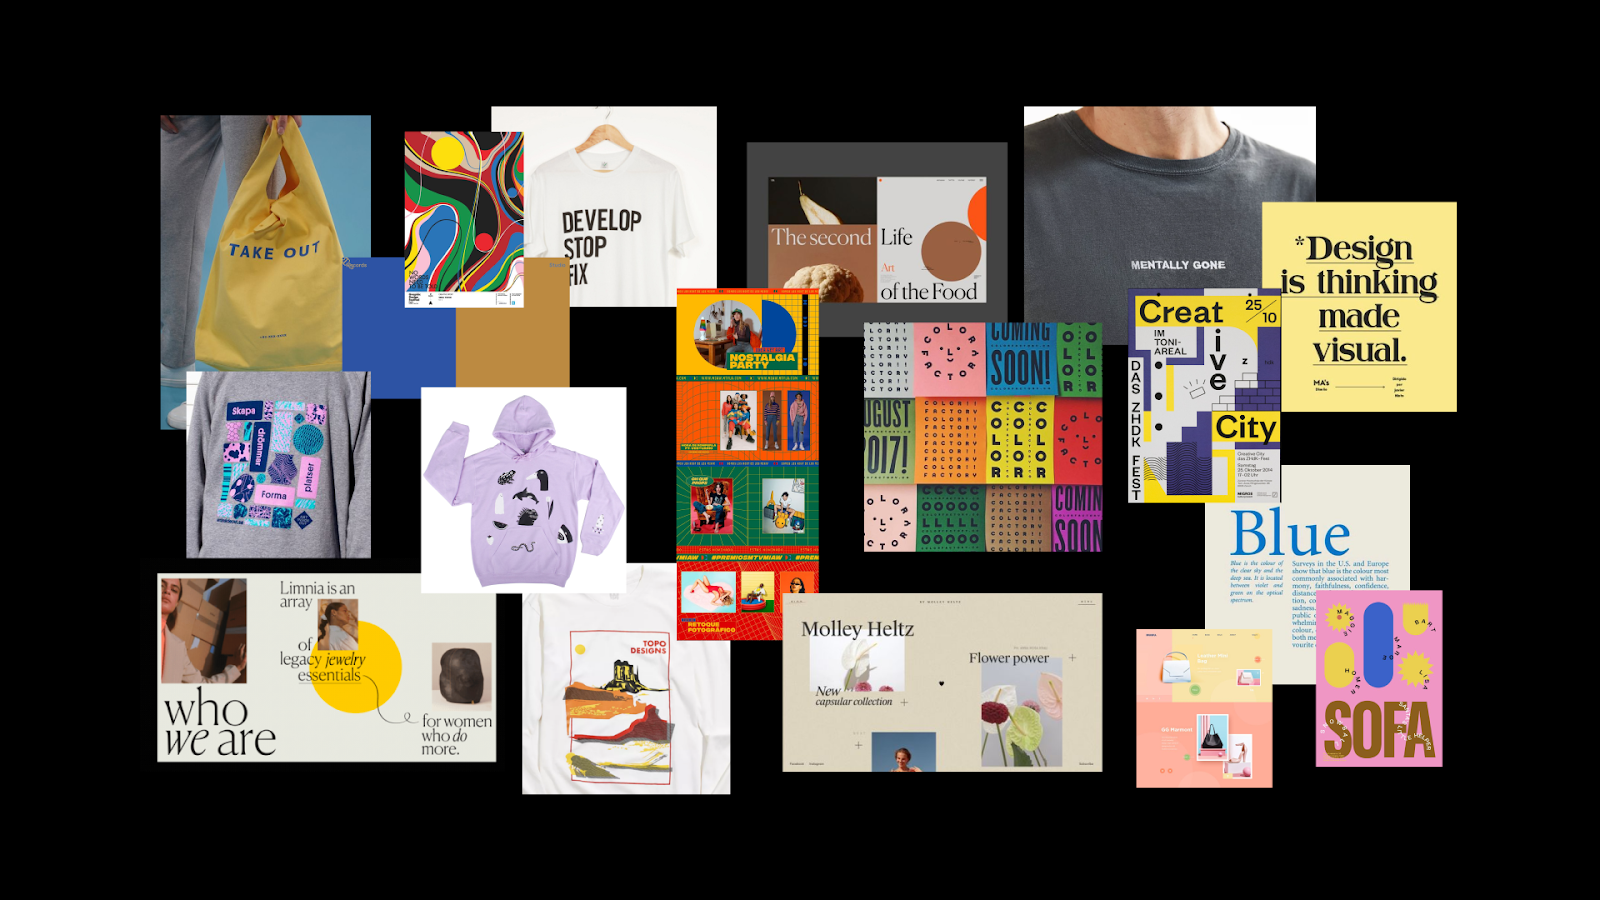 Various images of shirts, posters, and tote bags with different elements of typography, colors, and designs. A moodboard for inspiration for Webflow's merch store.